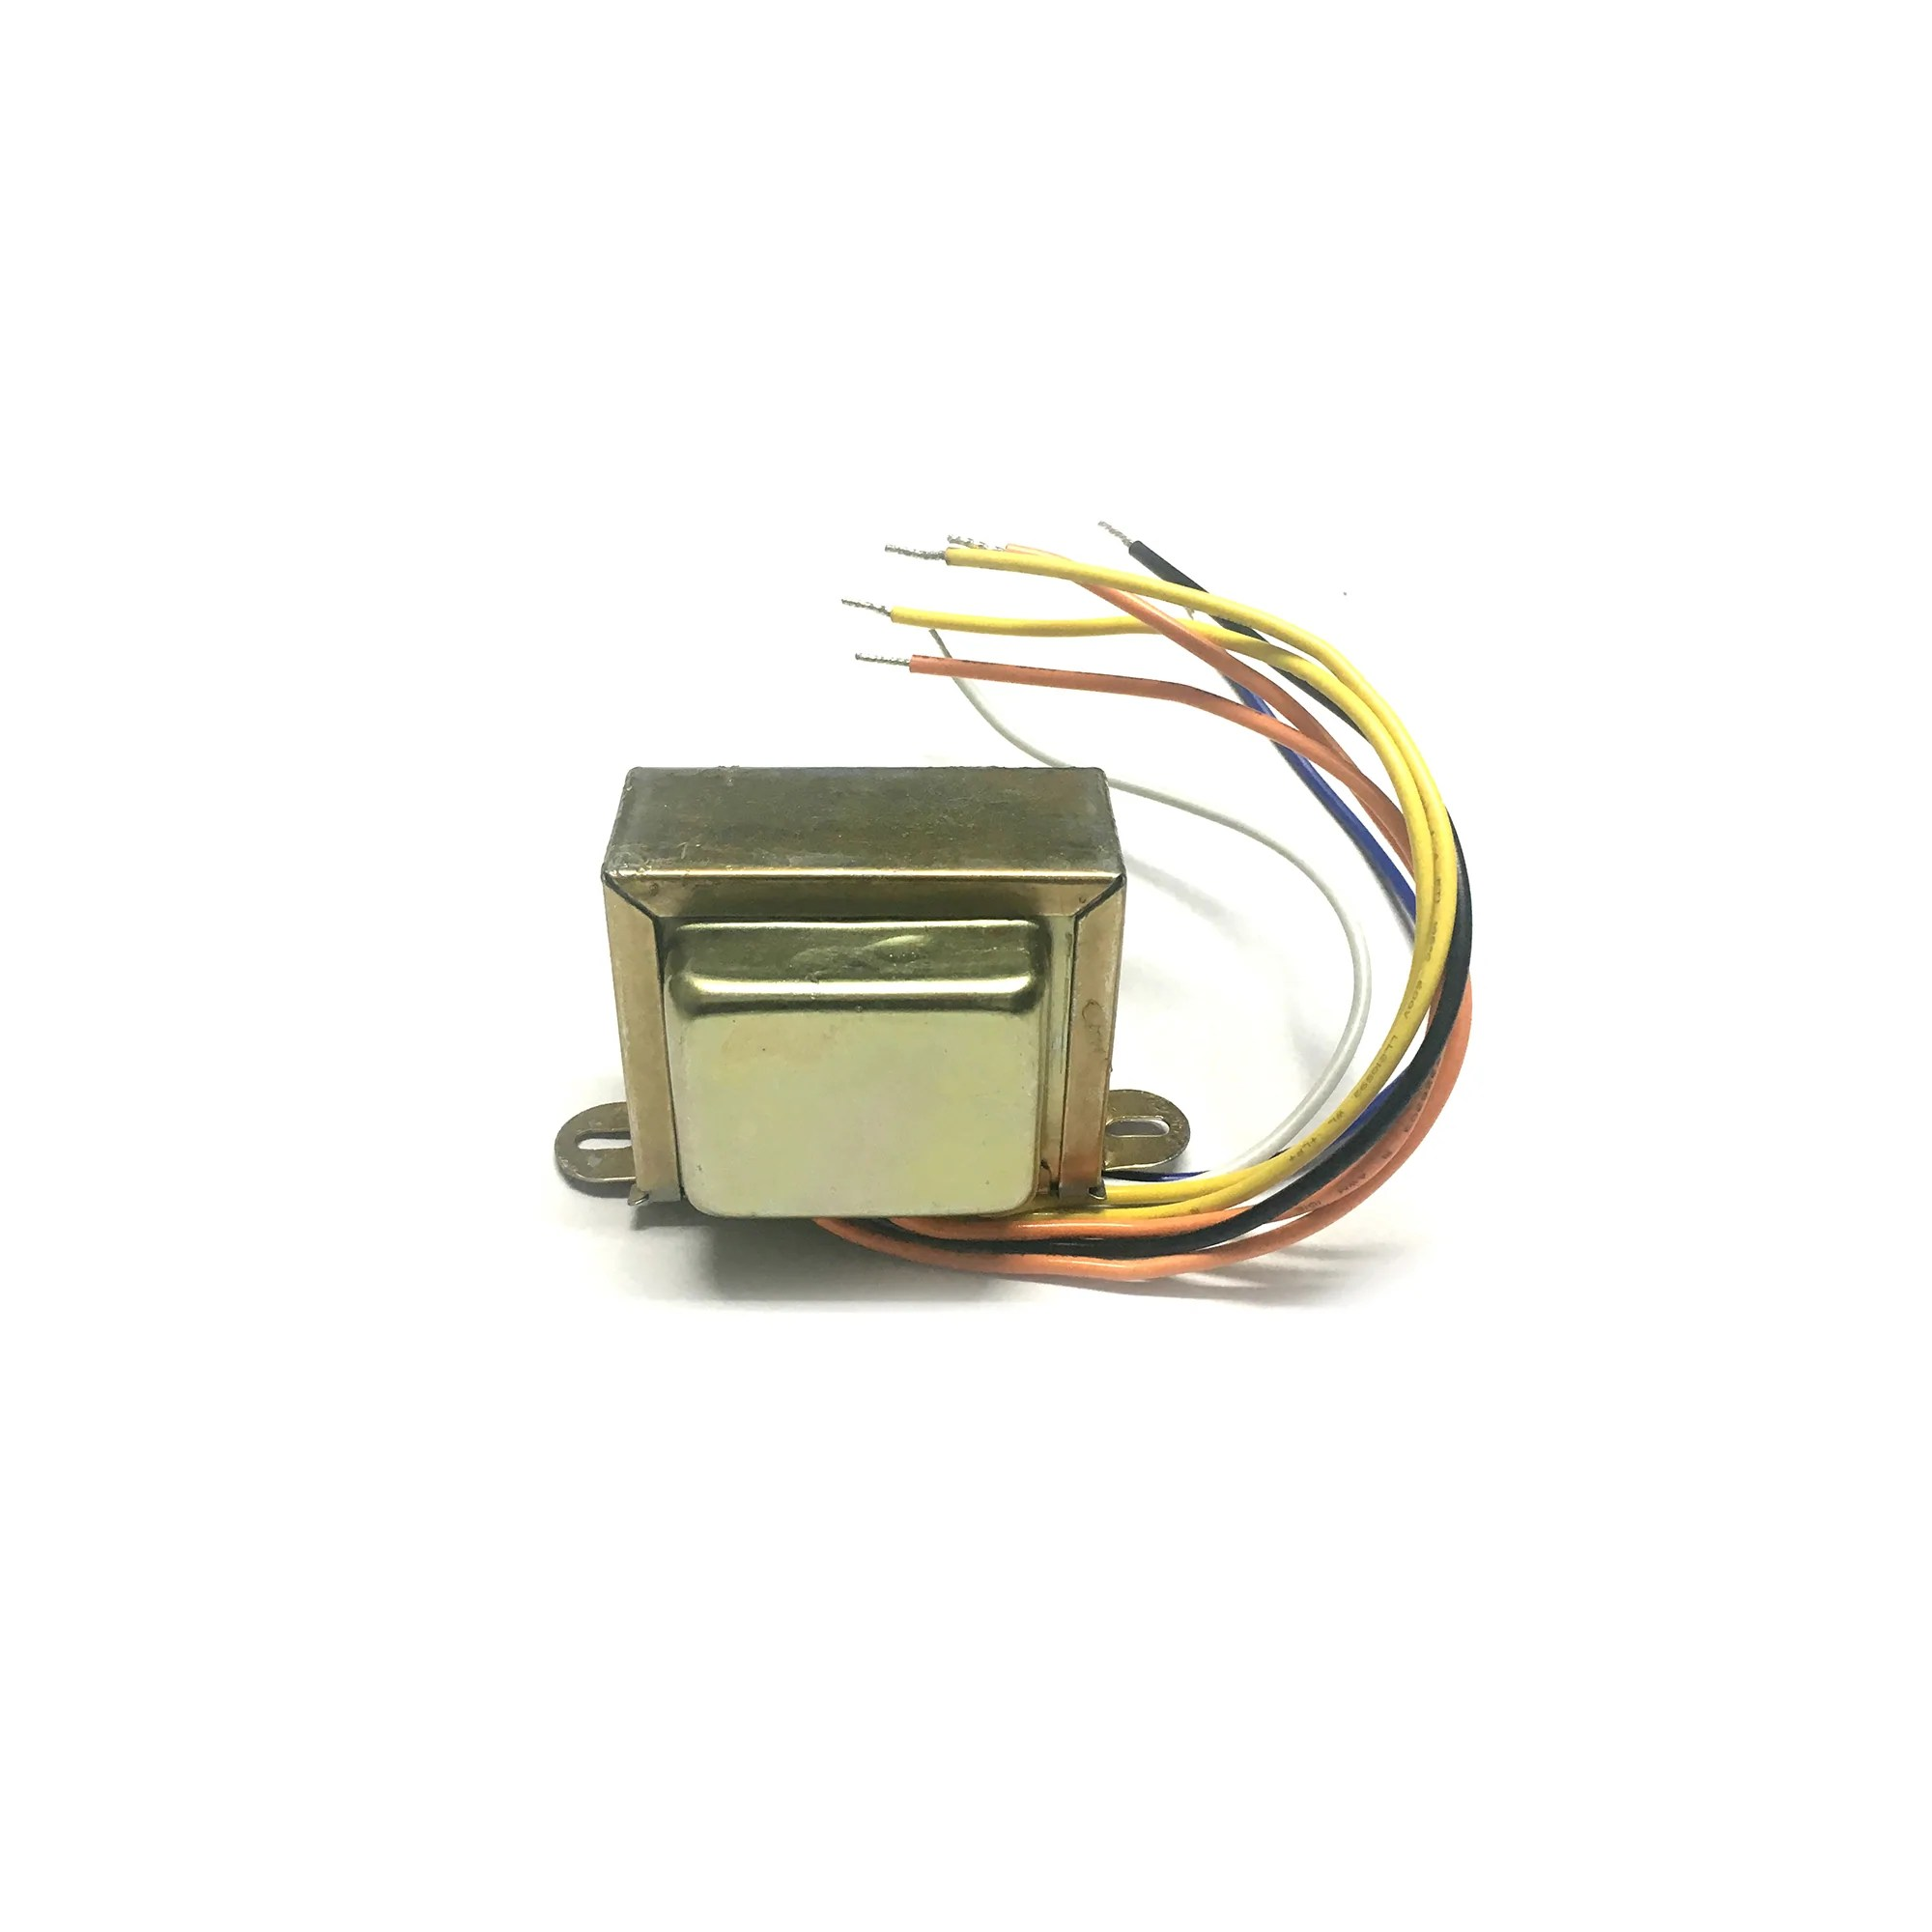 hight resolution of re 150 re 301 re 501 sre 555 240v power transformer replacement